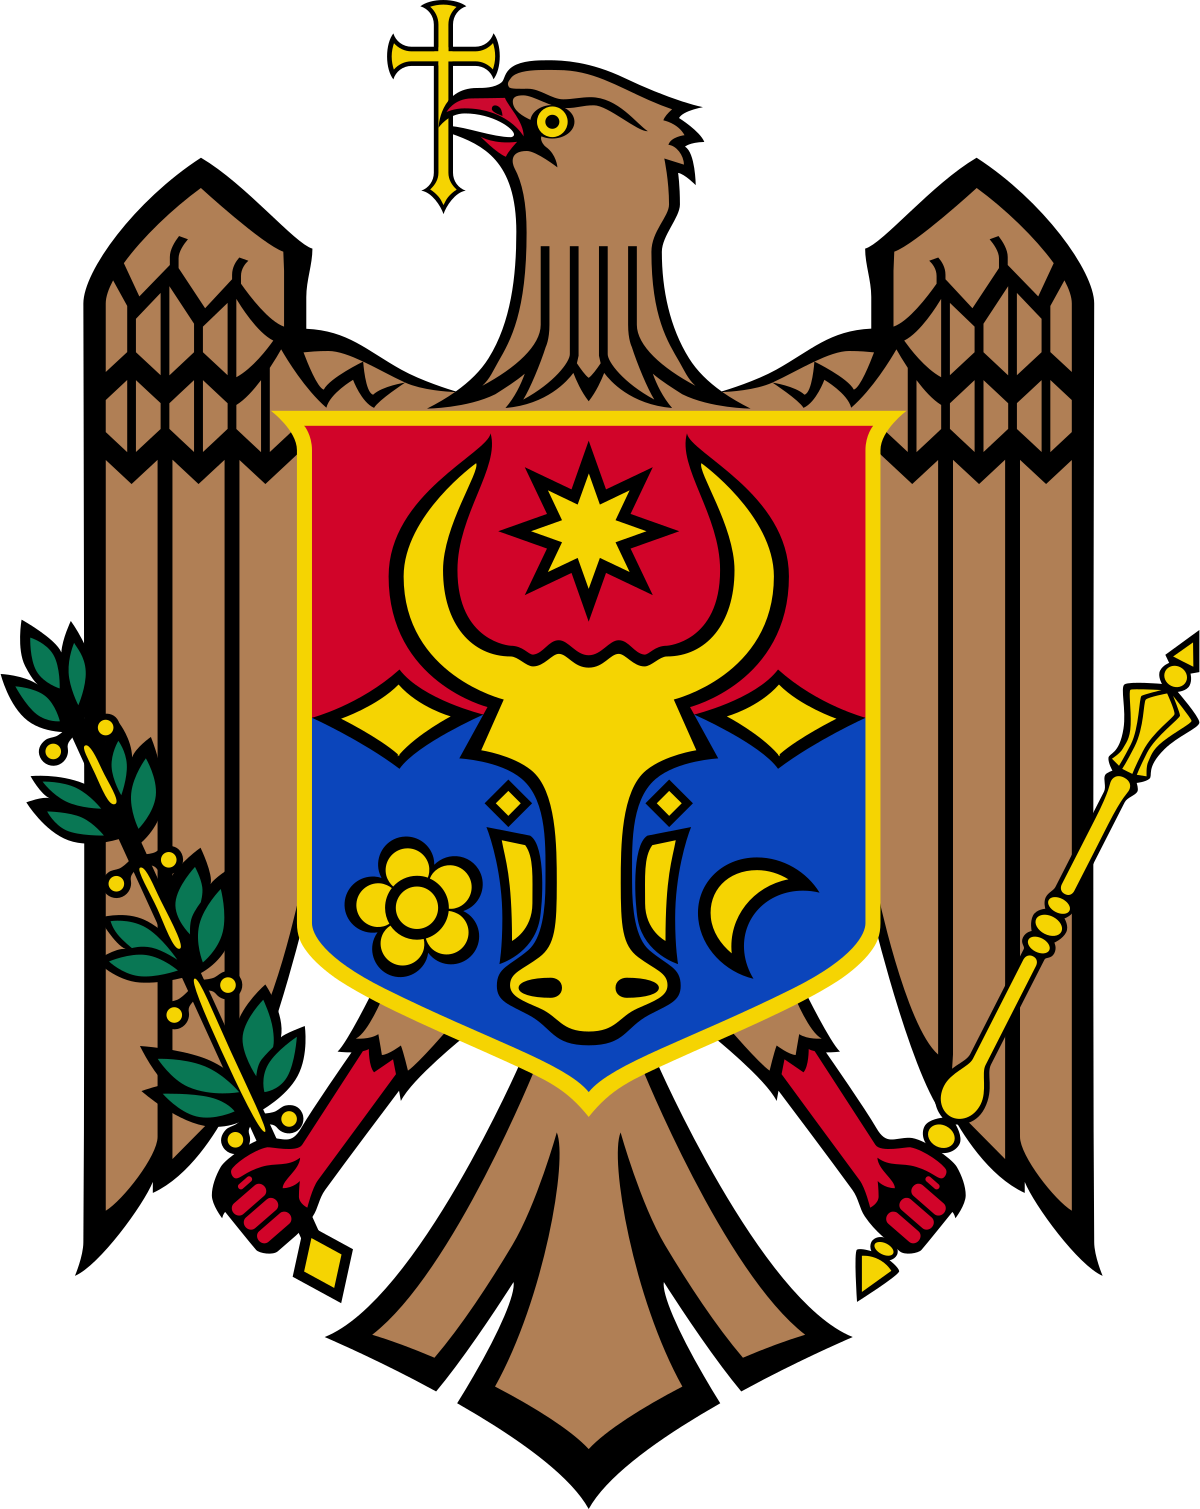 Leader clipart authoritarian. Politics of moldova wikipedia